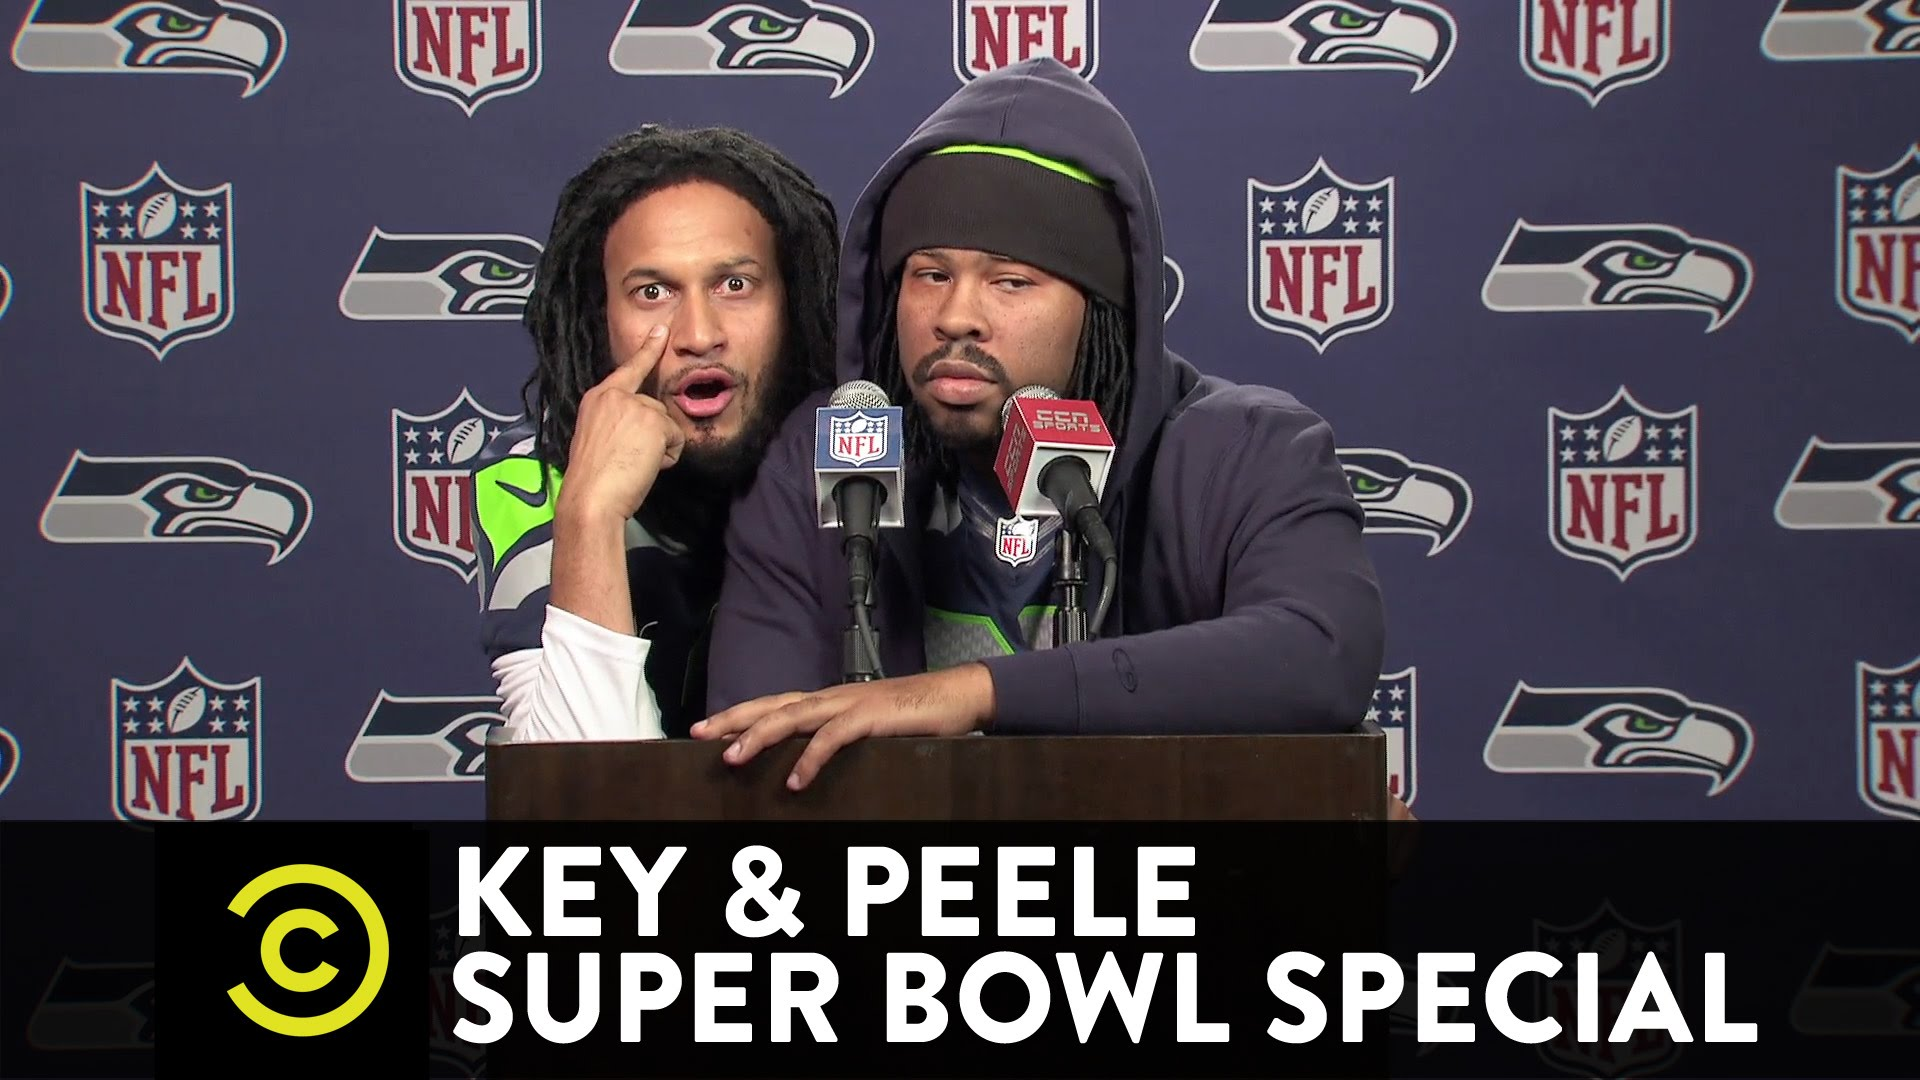 Key & Peele: Marshawn Lynch and Richard Sherman's Joint Press Conference